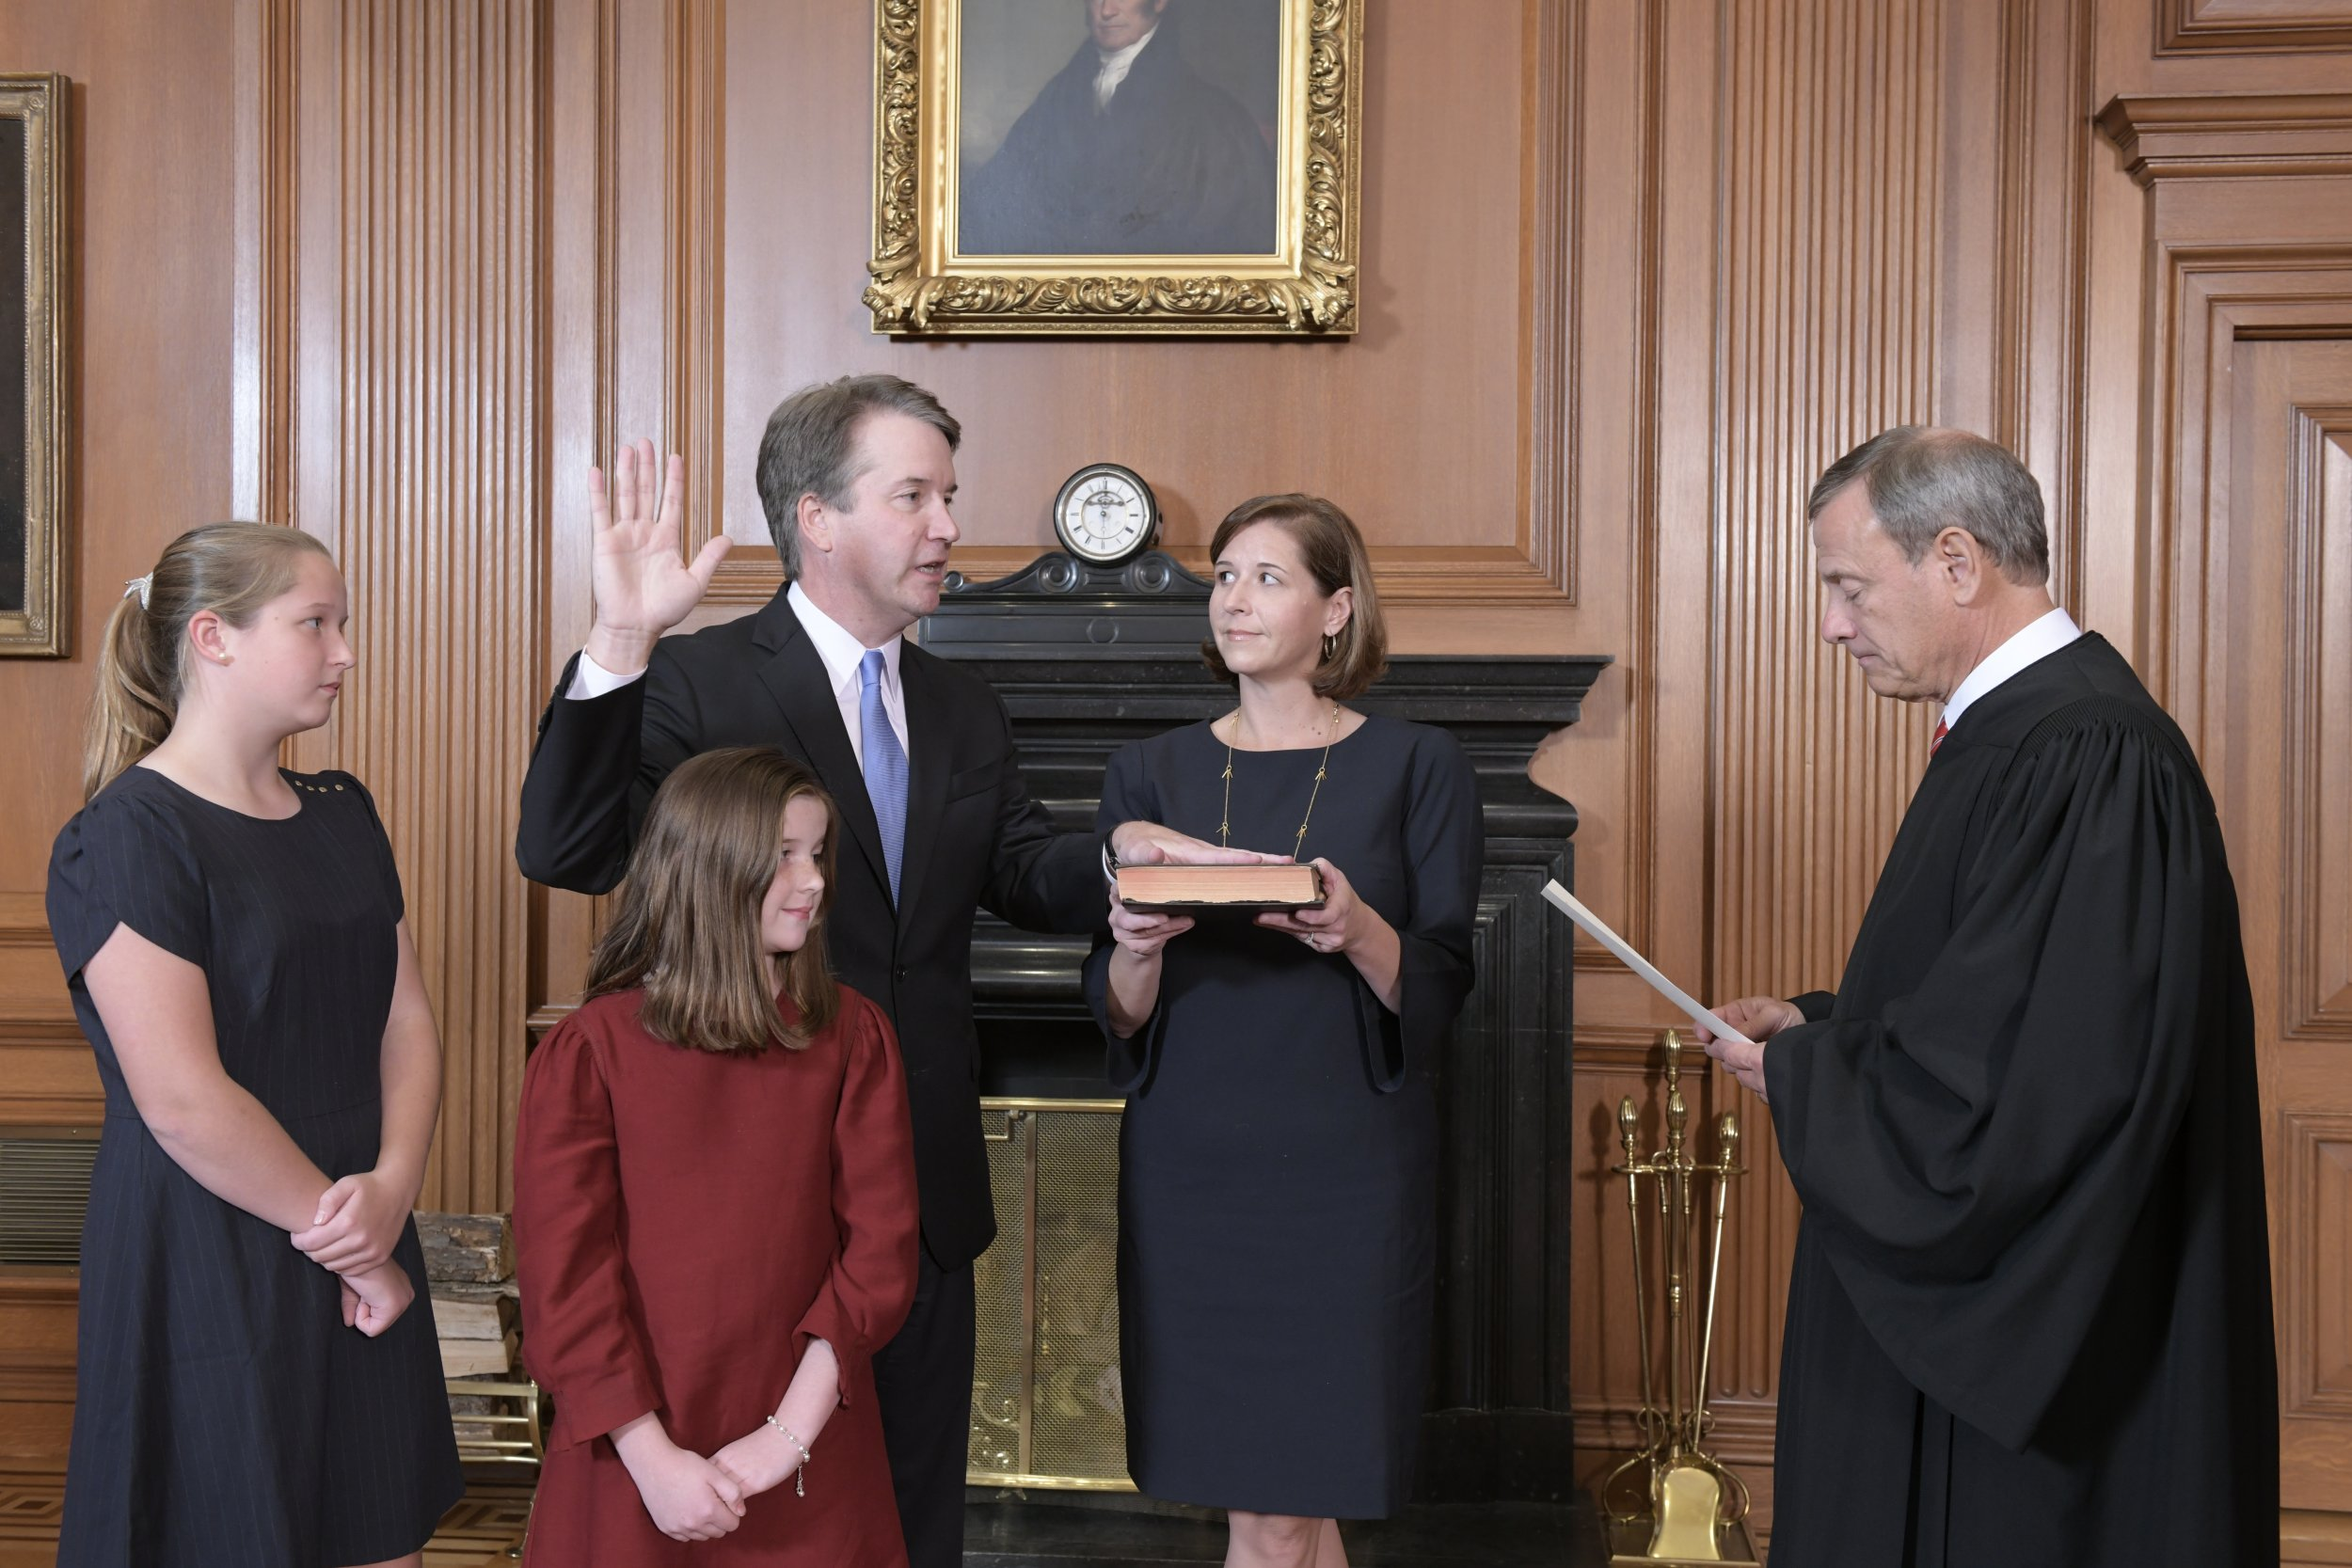 Brett Kavanaugh, confirmation, roe v. wade, overturned